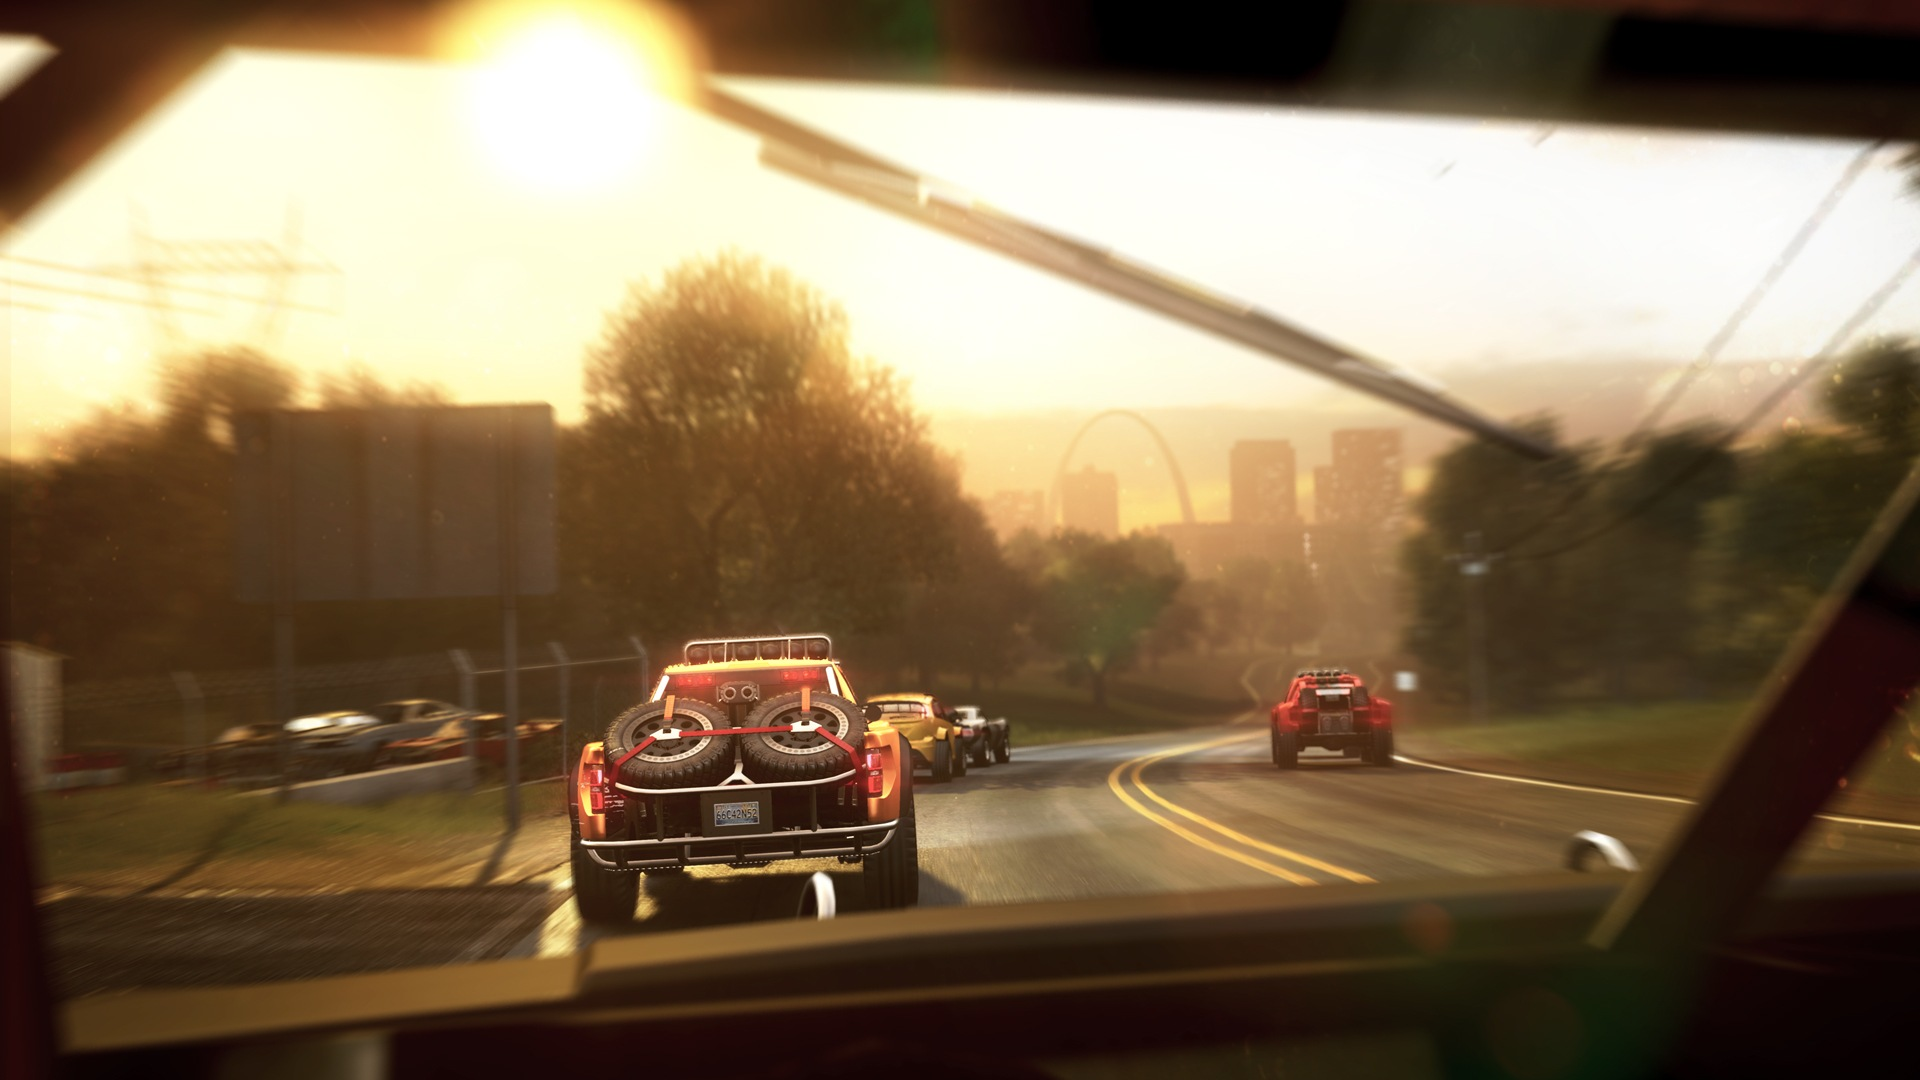 THECREW_GC_Screenshots_01_111689.jpg